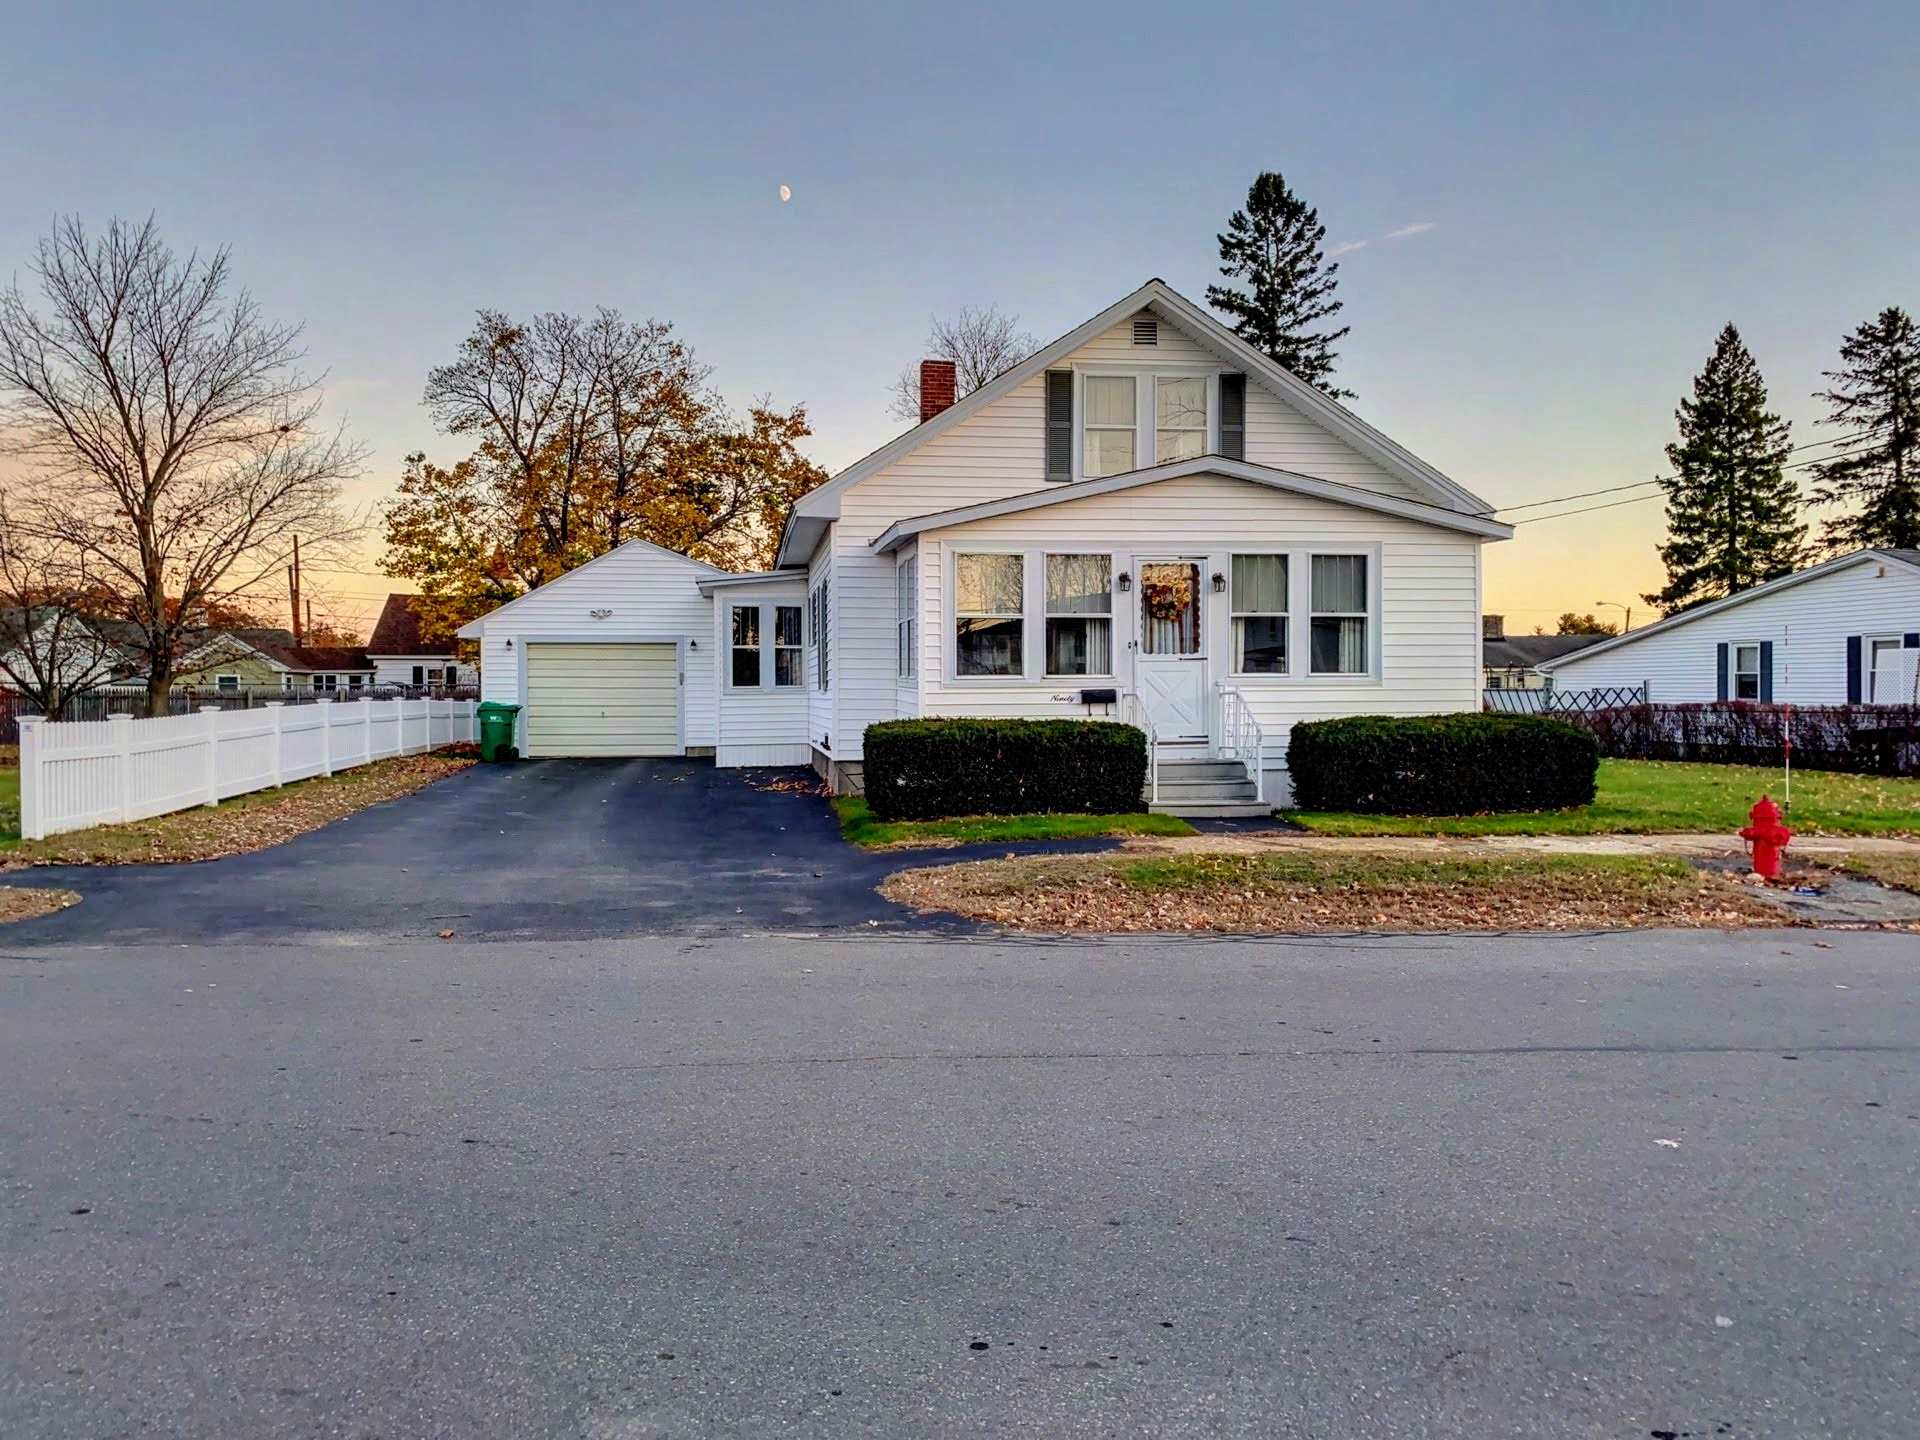 Photo of 90 Pine Street Rochester NH 03867